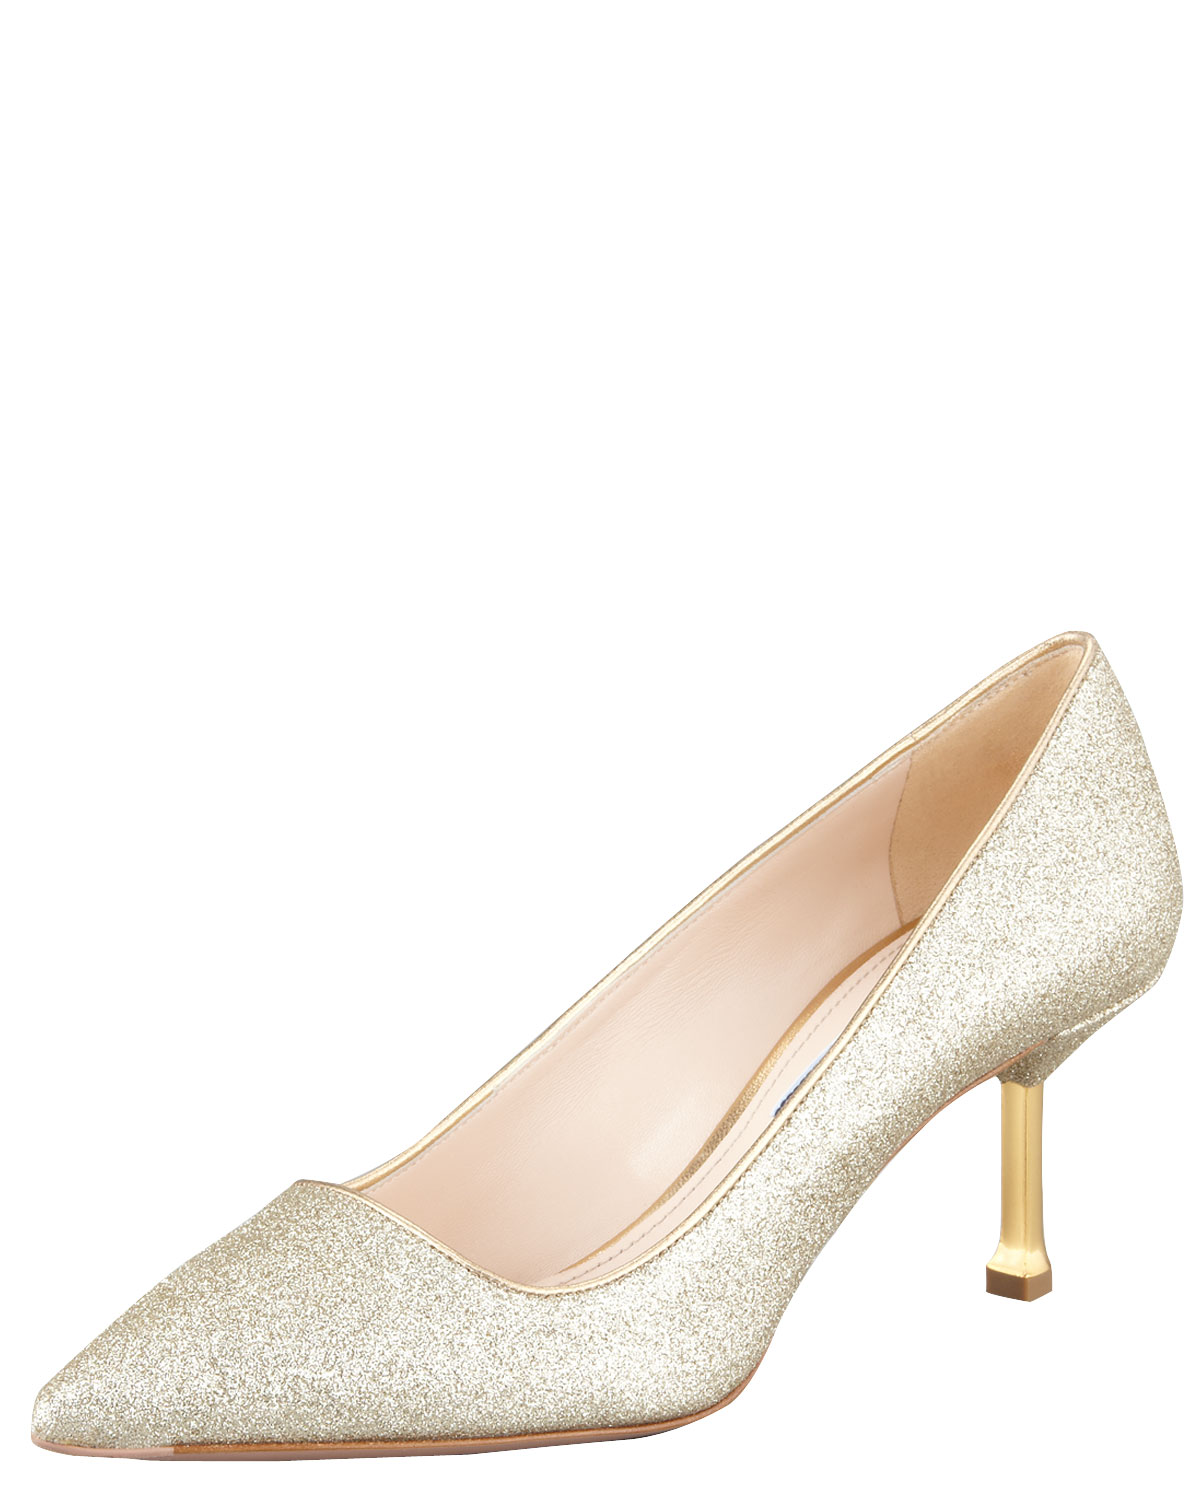 sale low price fee shipping clearance pay with visa Prada Glitter Pointed-Toe Pumps buy cheap newest buy cheap largest supplier 7PLAqympKx